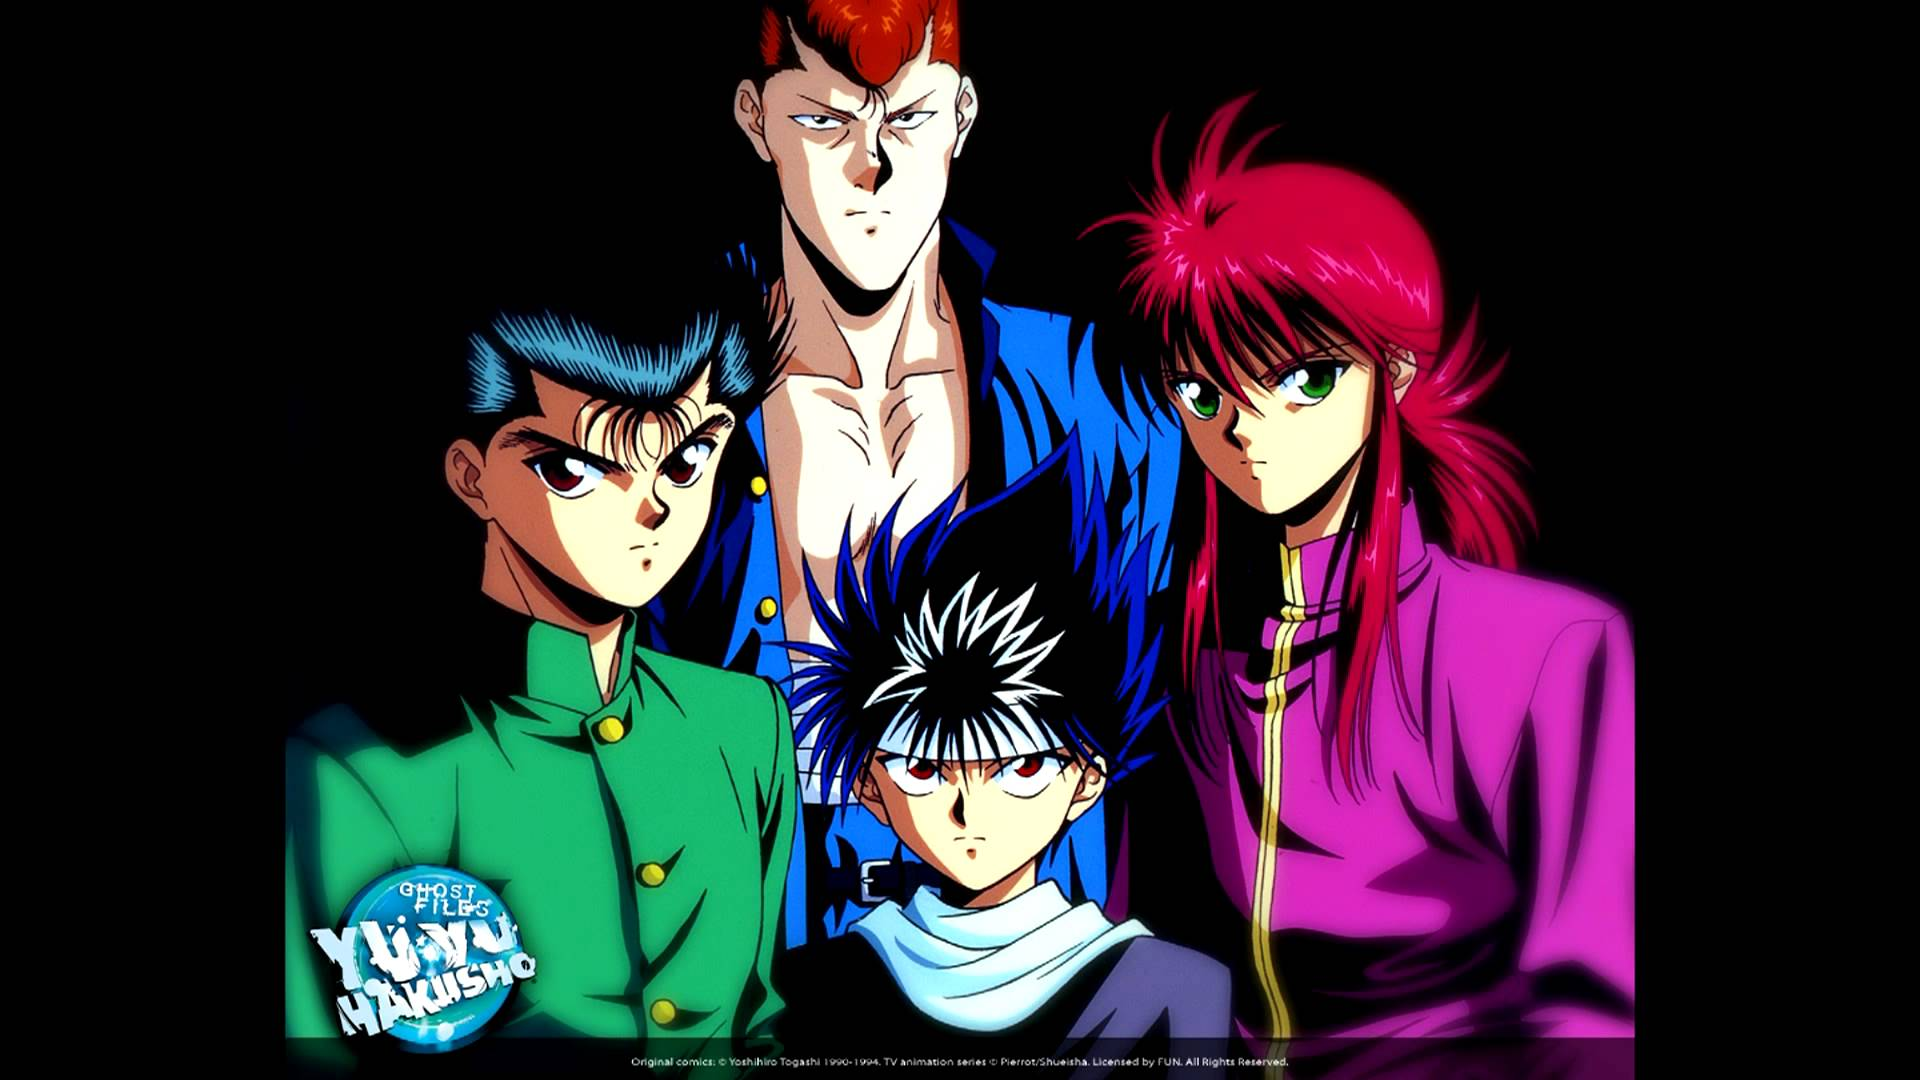 Hd Wallpapers Best Collection Yu Yu Hakusho Wallpapers High Quality Download Free